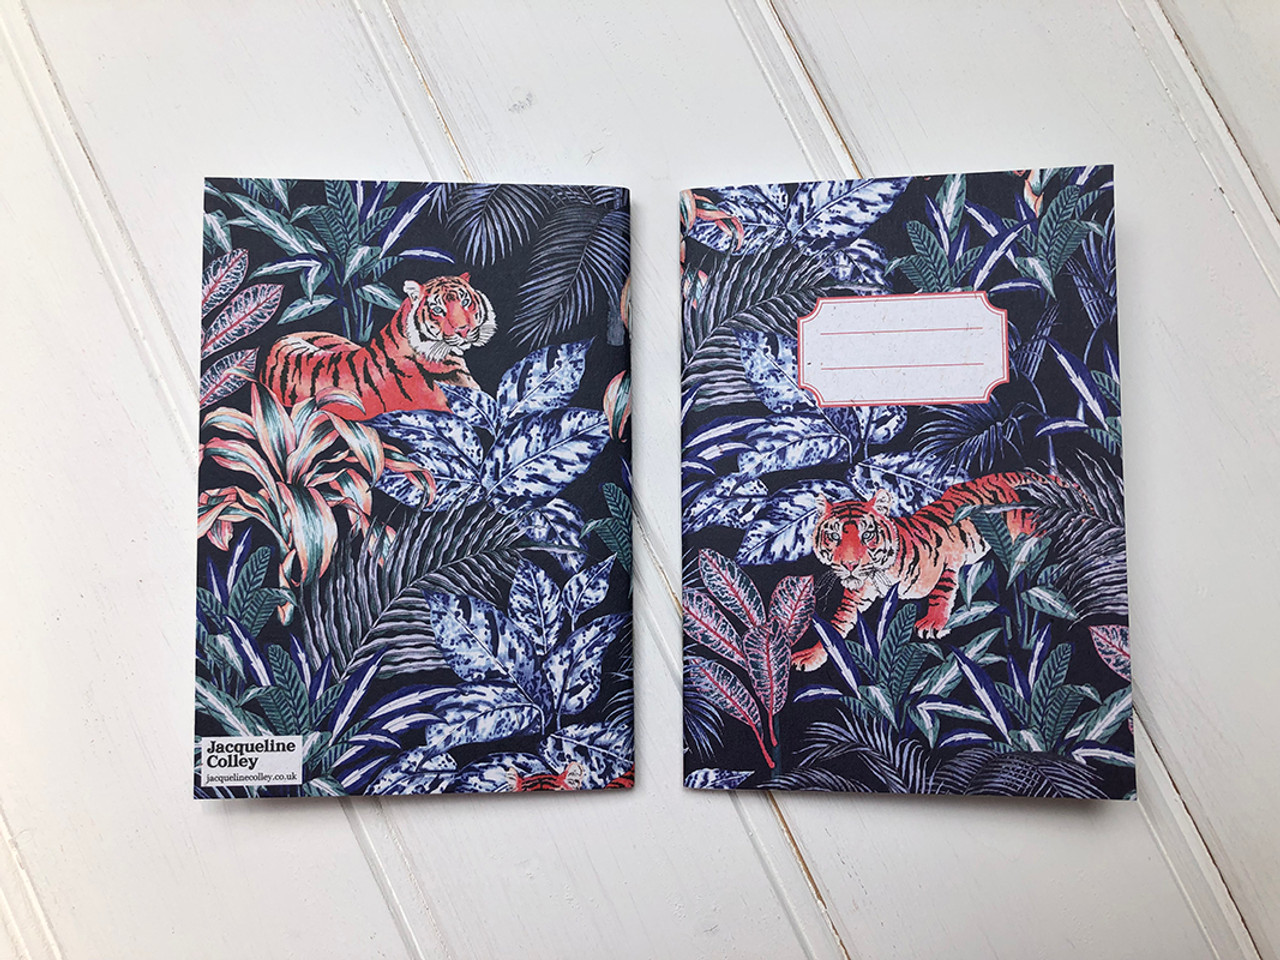 Jacqueline Colley Tiger notebook cover